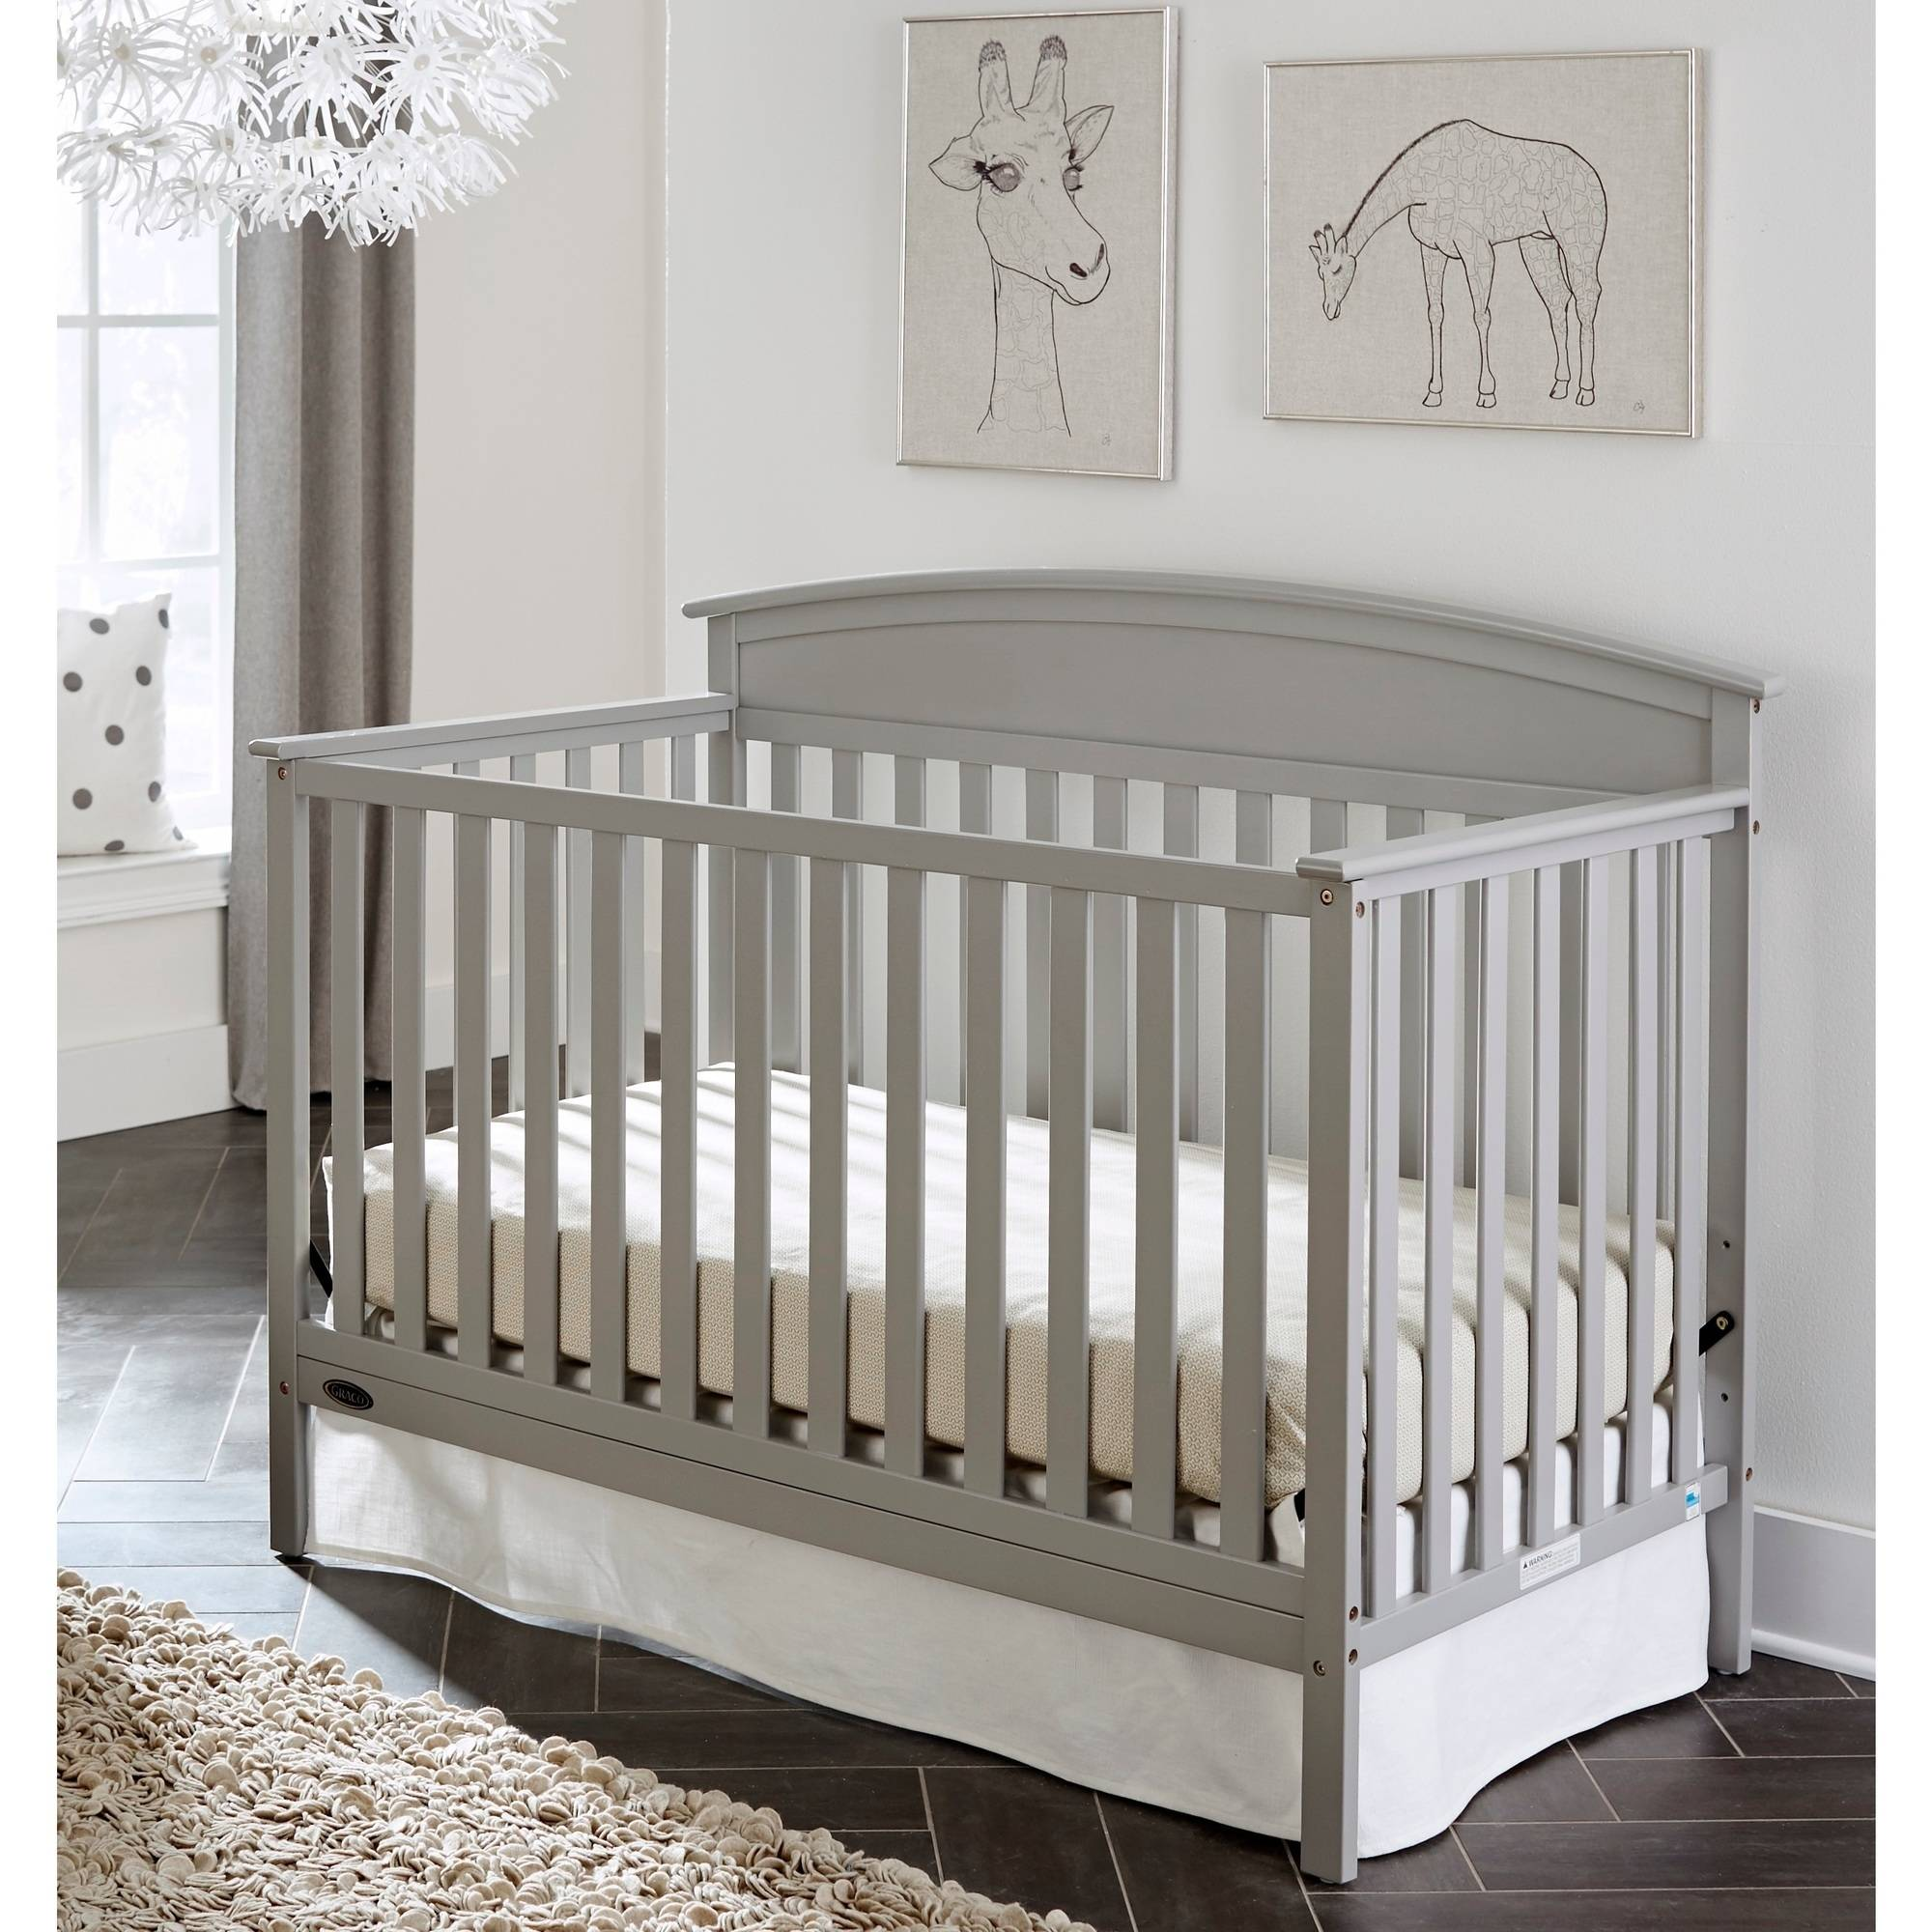 Graco Benton 5-in-1 Convertible Fixed-Side Crib, Choose Your Finish